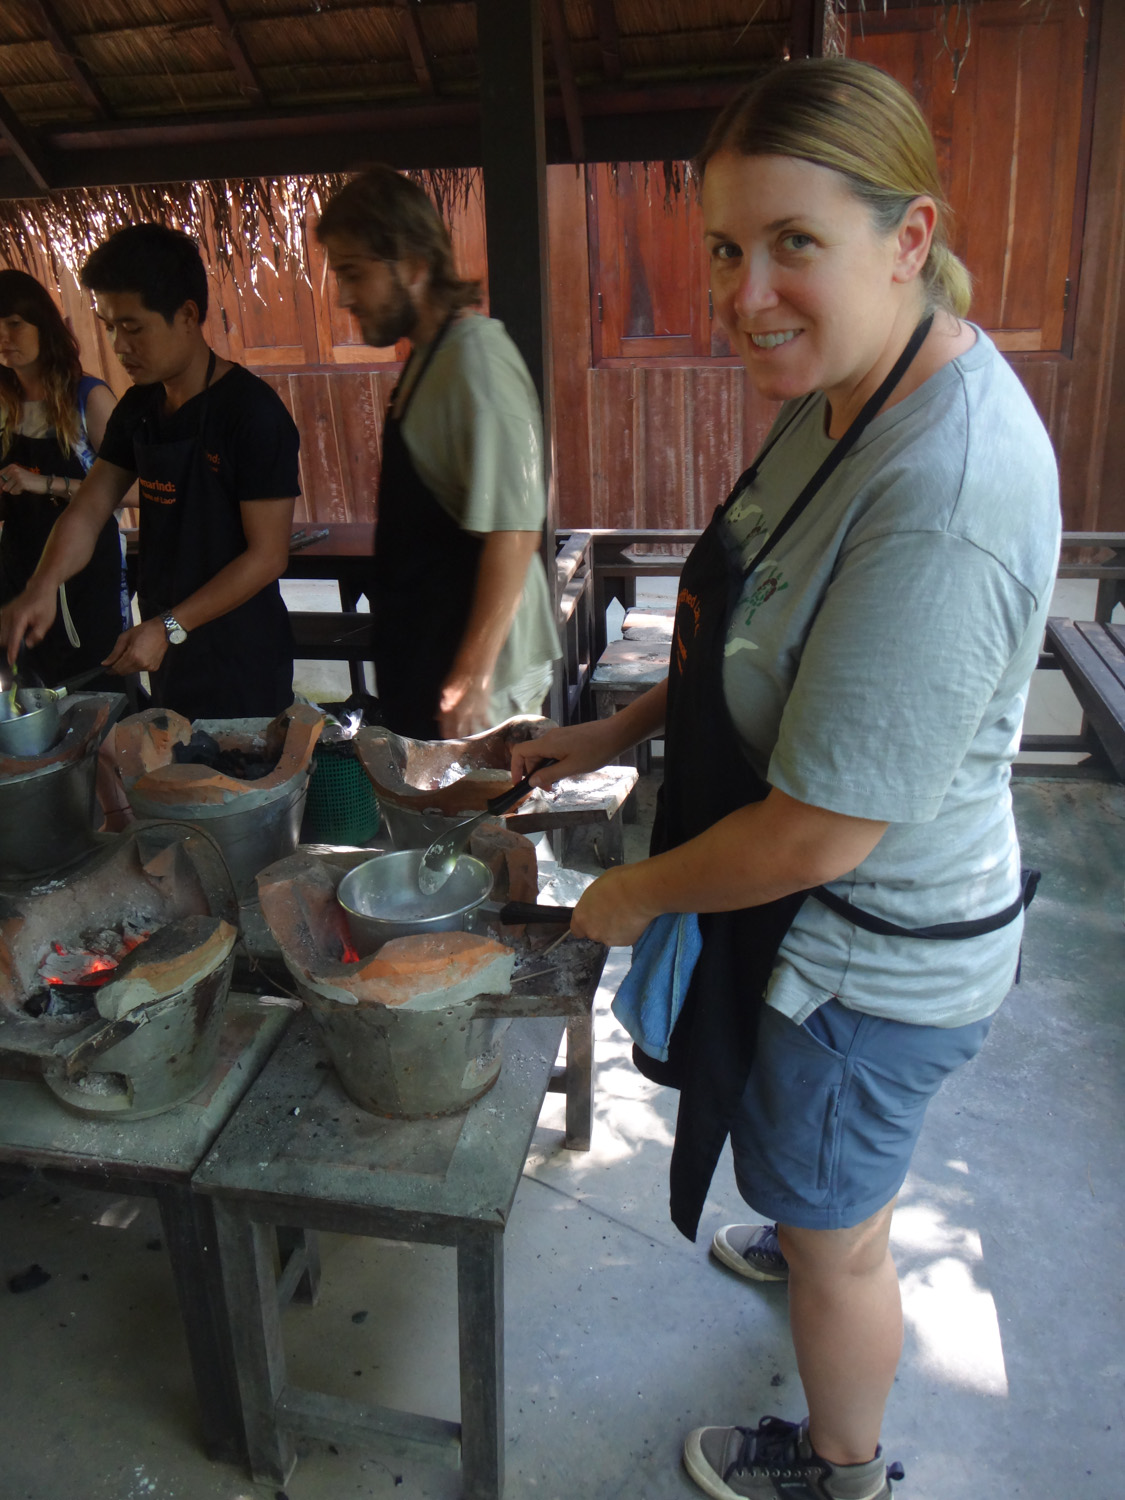 Cookin with a charcoal stove, the Laos way.